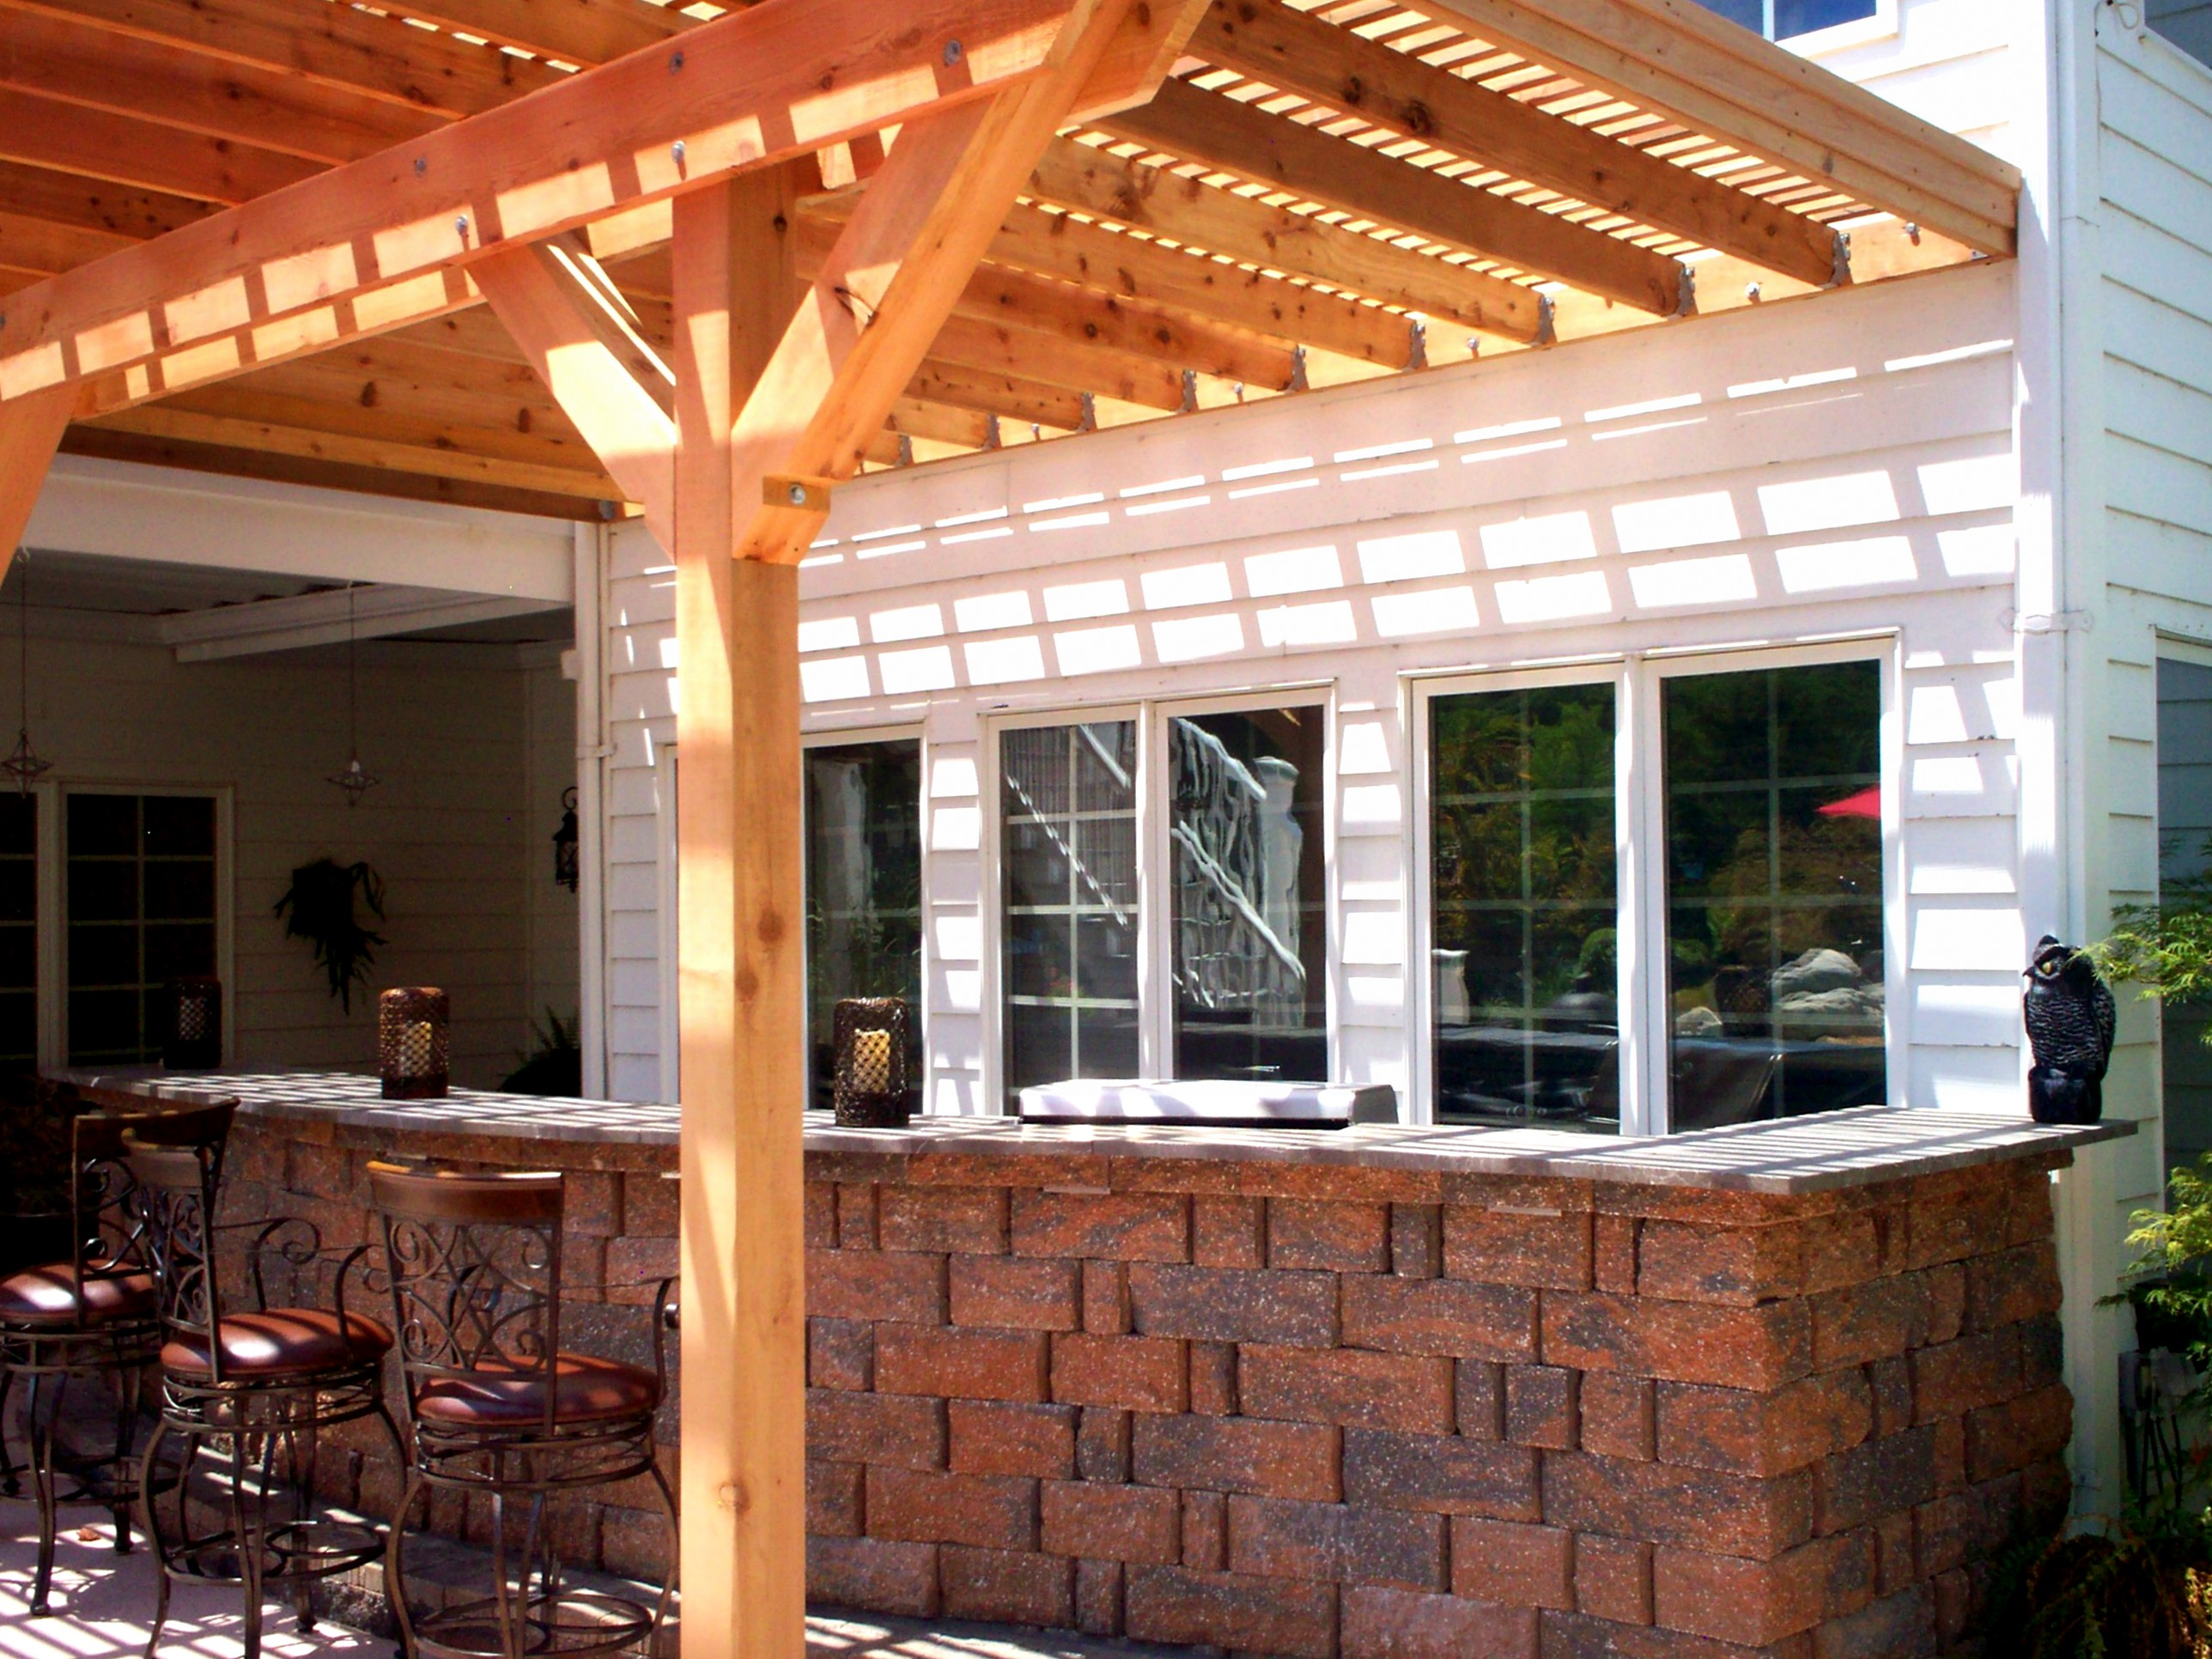 Pergola Designs Pergola Designs St Louis Decks Screened Porches Pergolas By